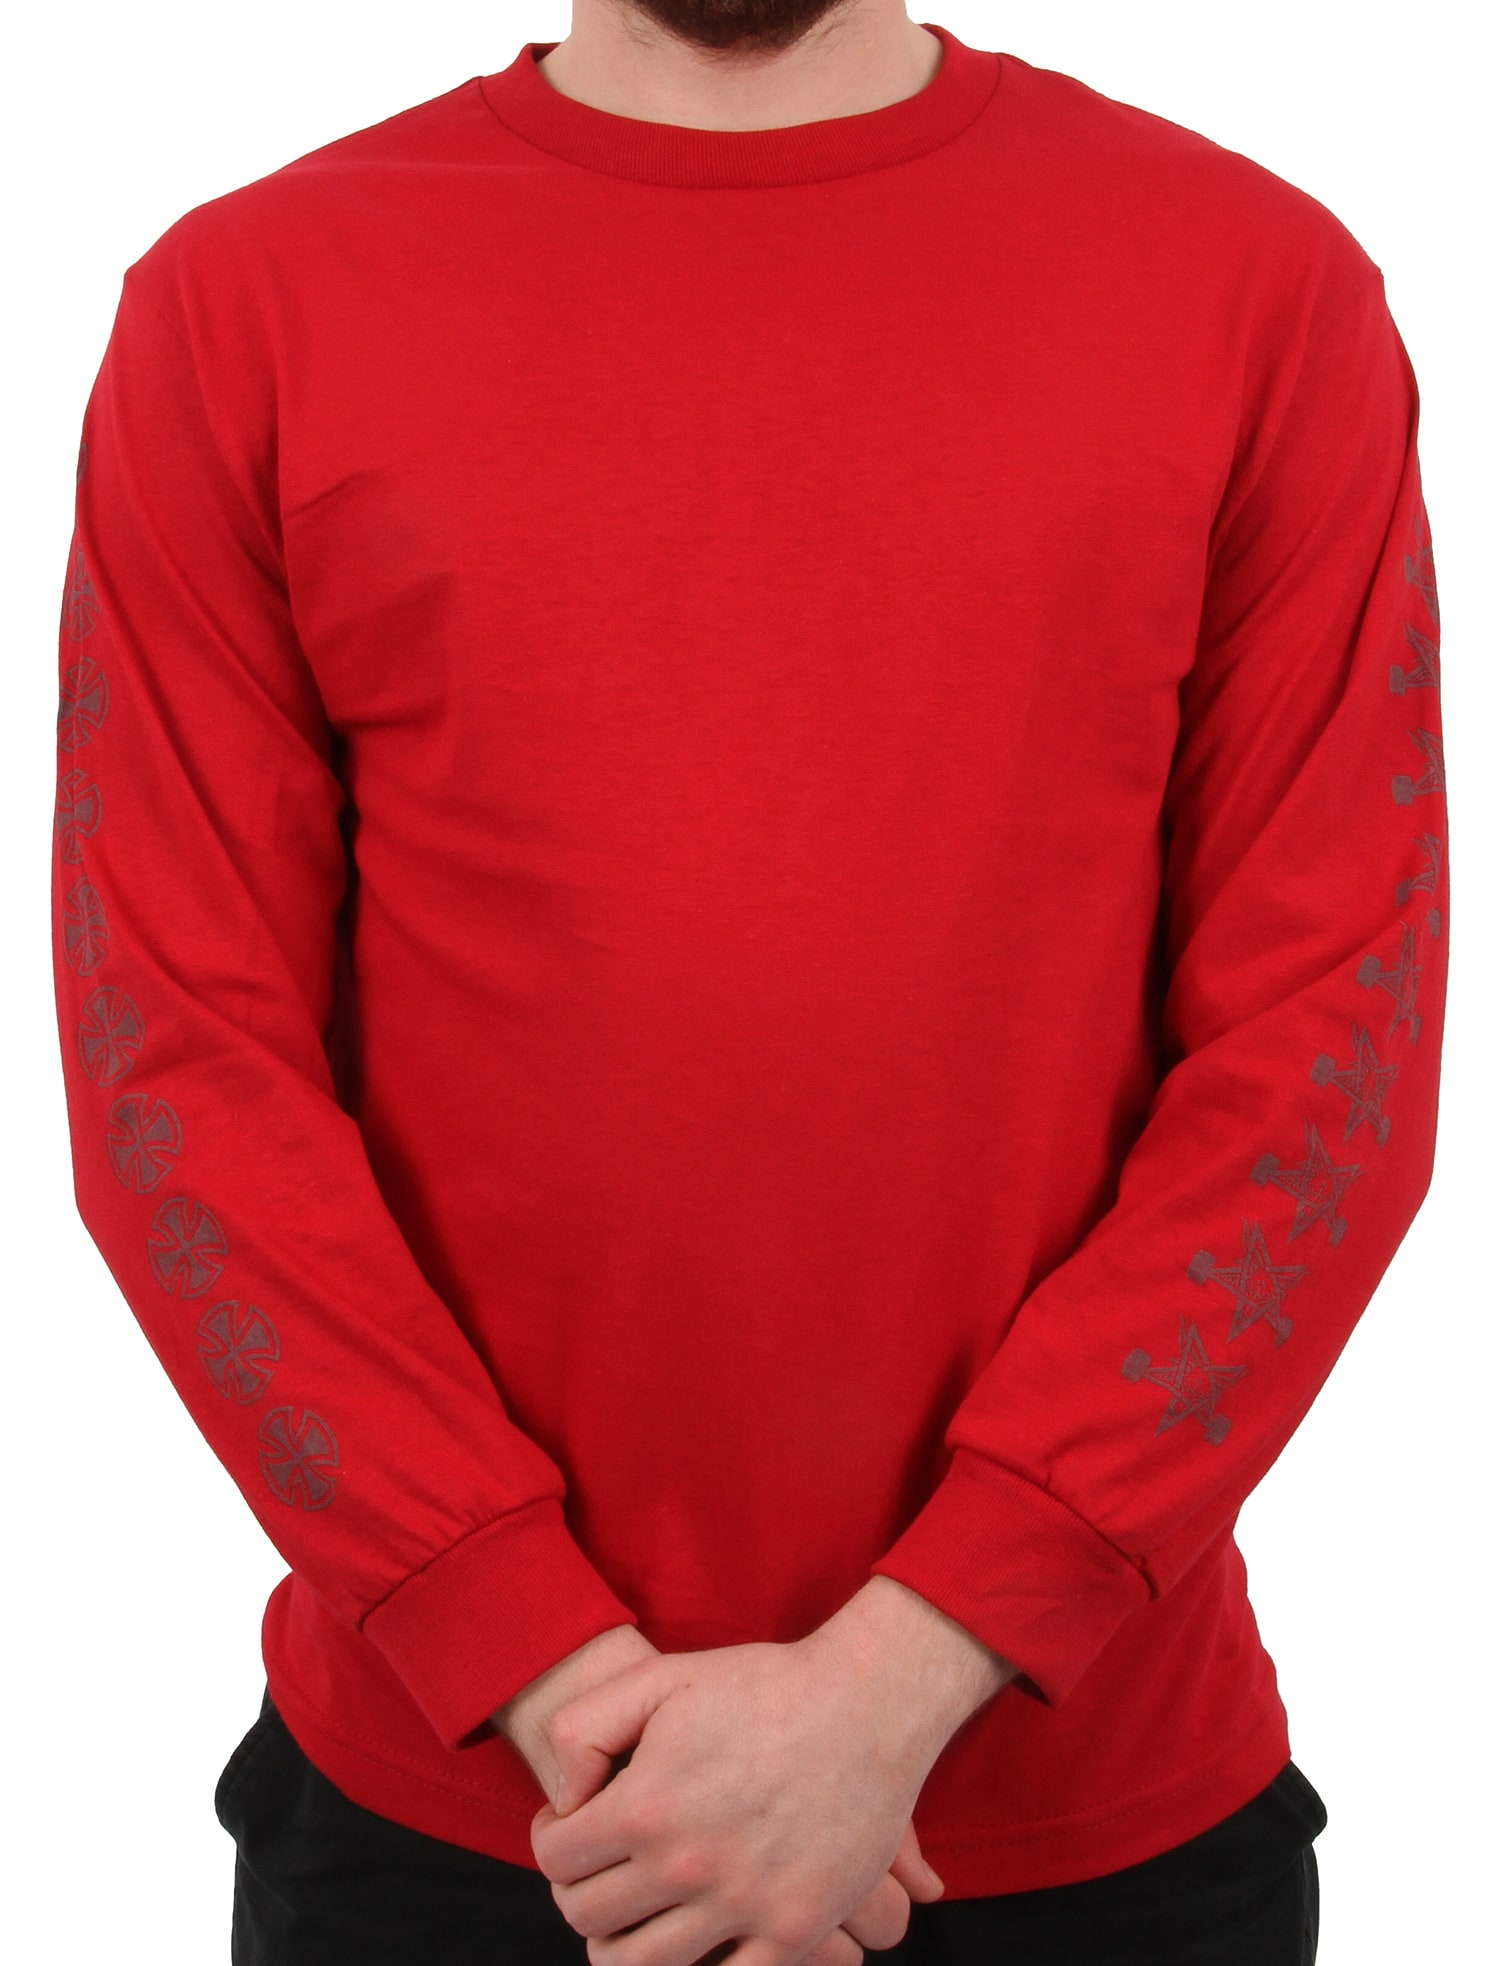 Independent x Thrasher Pentagram Cross Long Sleeve T Shirt - Cardinal Red |  Independent Skateboard Trucks | Independent Skate Clothing | Skatehut